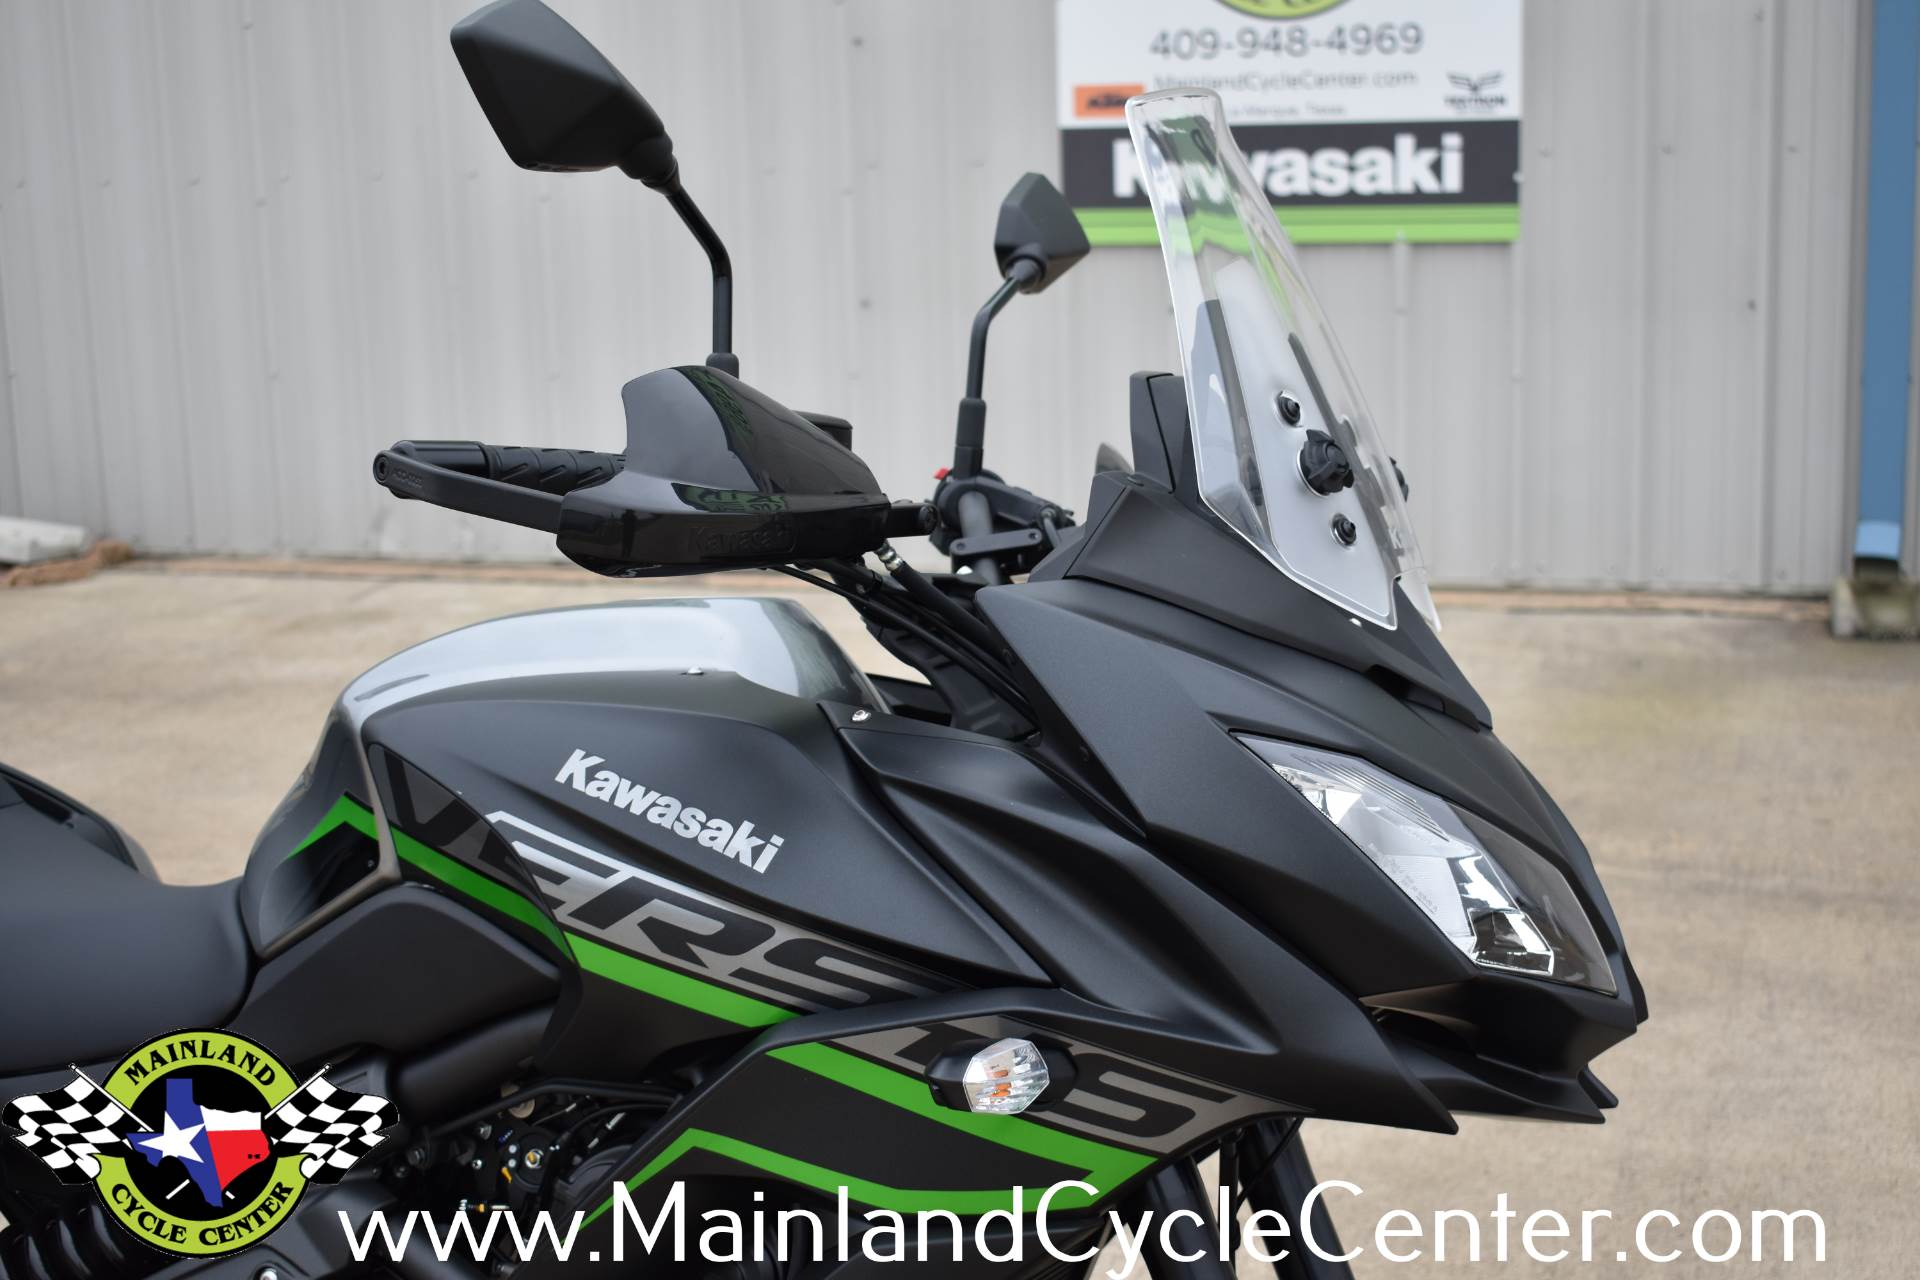 2019 Kawasaki Versys 650 LT in La Marque, Texas - Photo 12